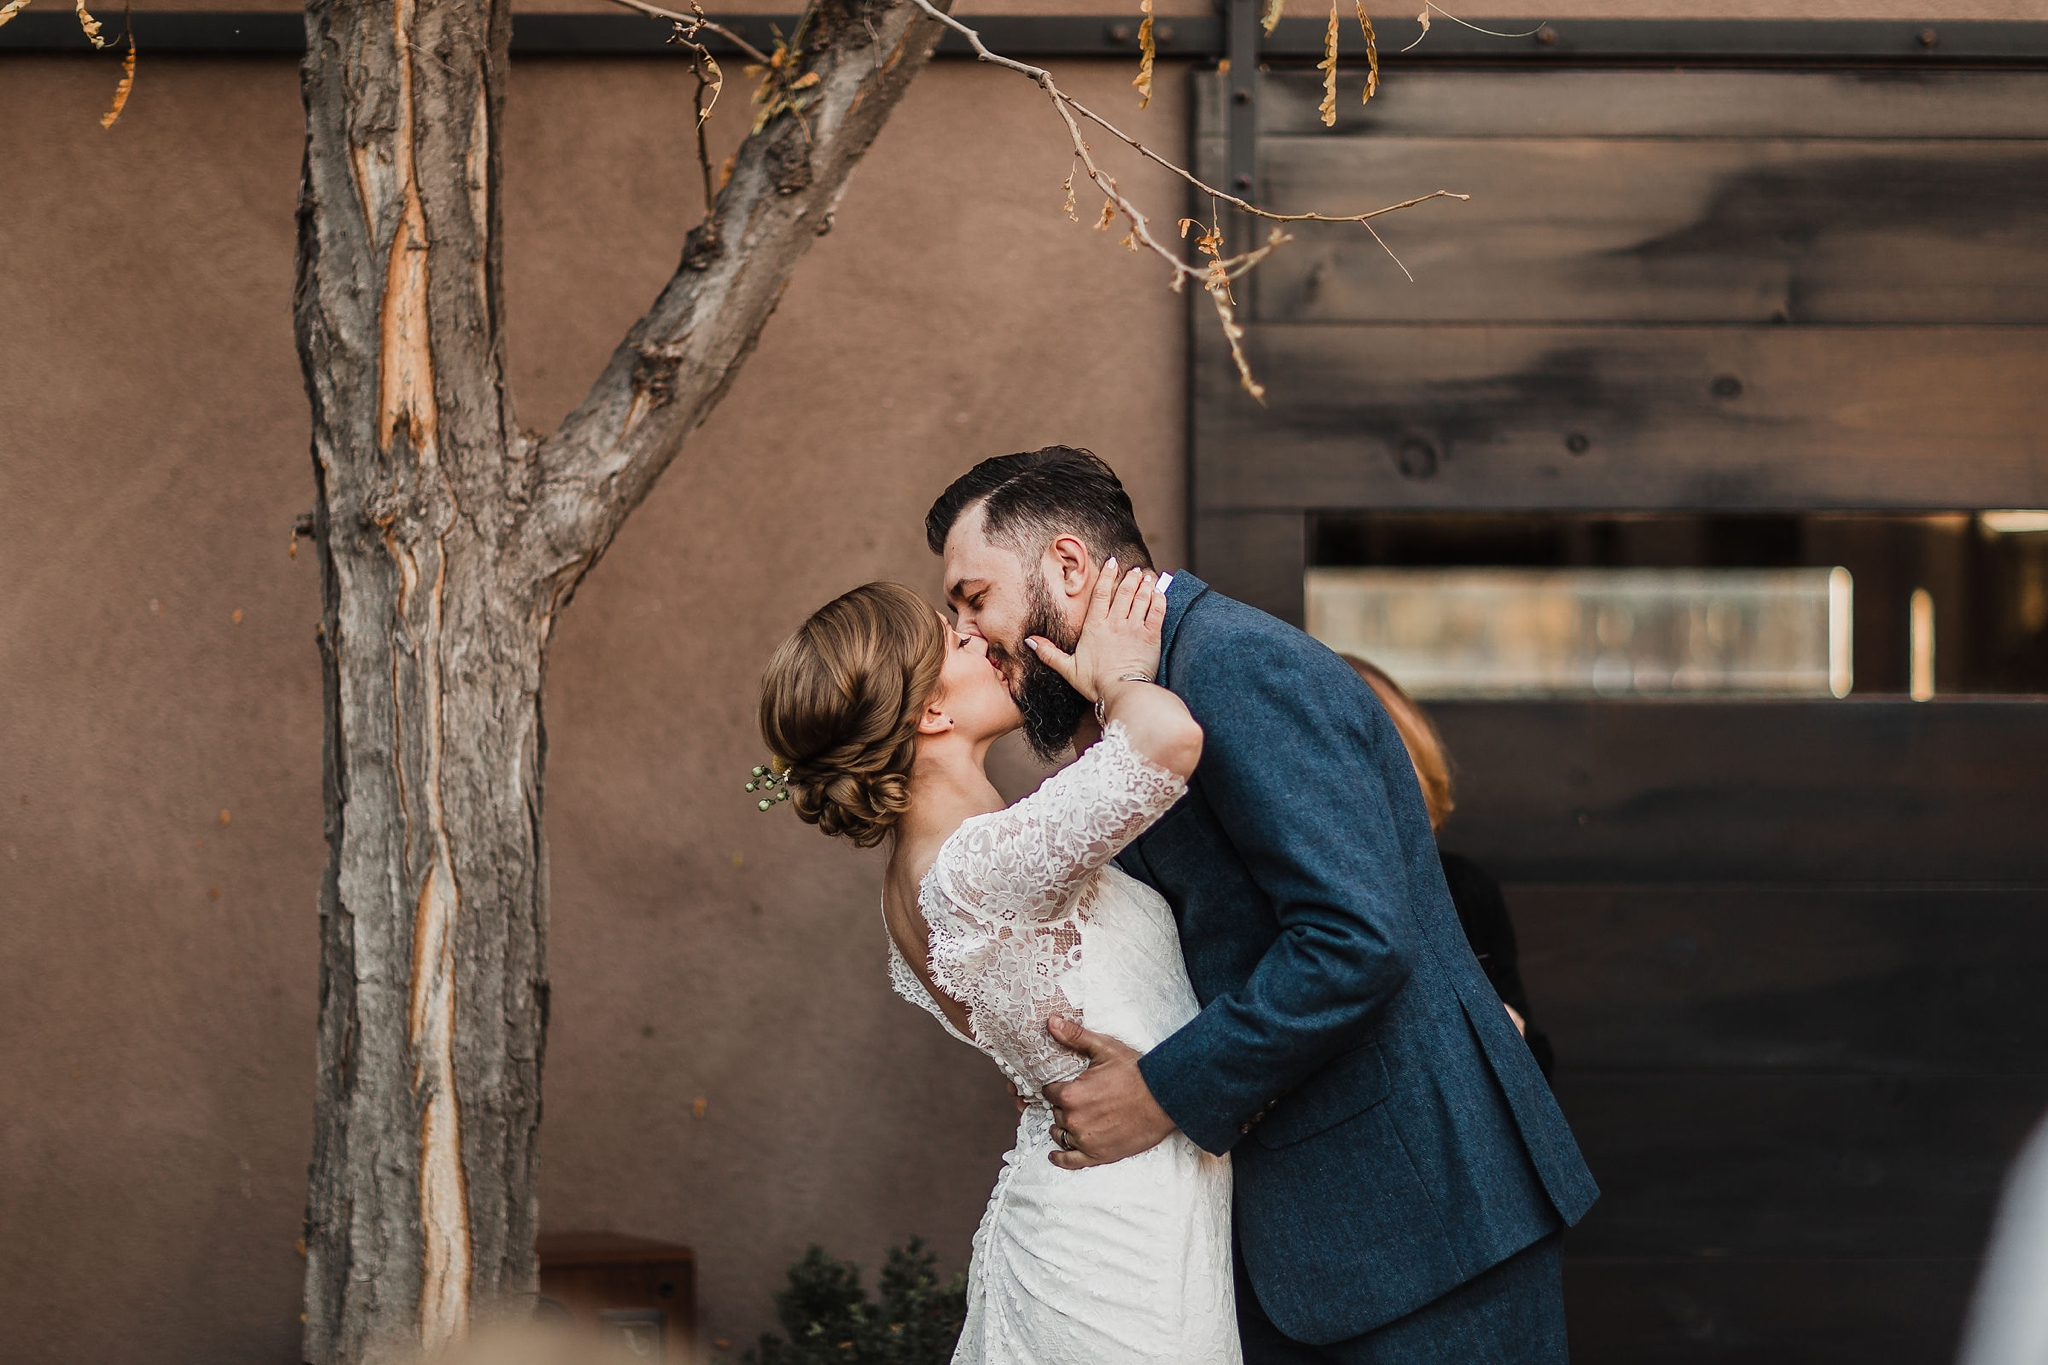 Alicia+lucia+photography+-+albuquerque+wedding+photographer+-+santa+fe+wedding+photography+-+new+mexico+wedding+photographer+-+albuquerque+wedding+-+sarabande+bed+breakfast+-+bed+and+breakfast+wedding_0059.jpg